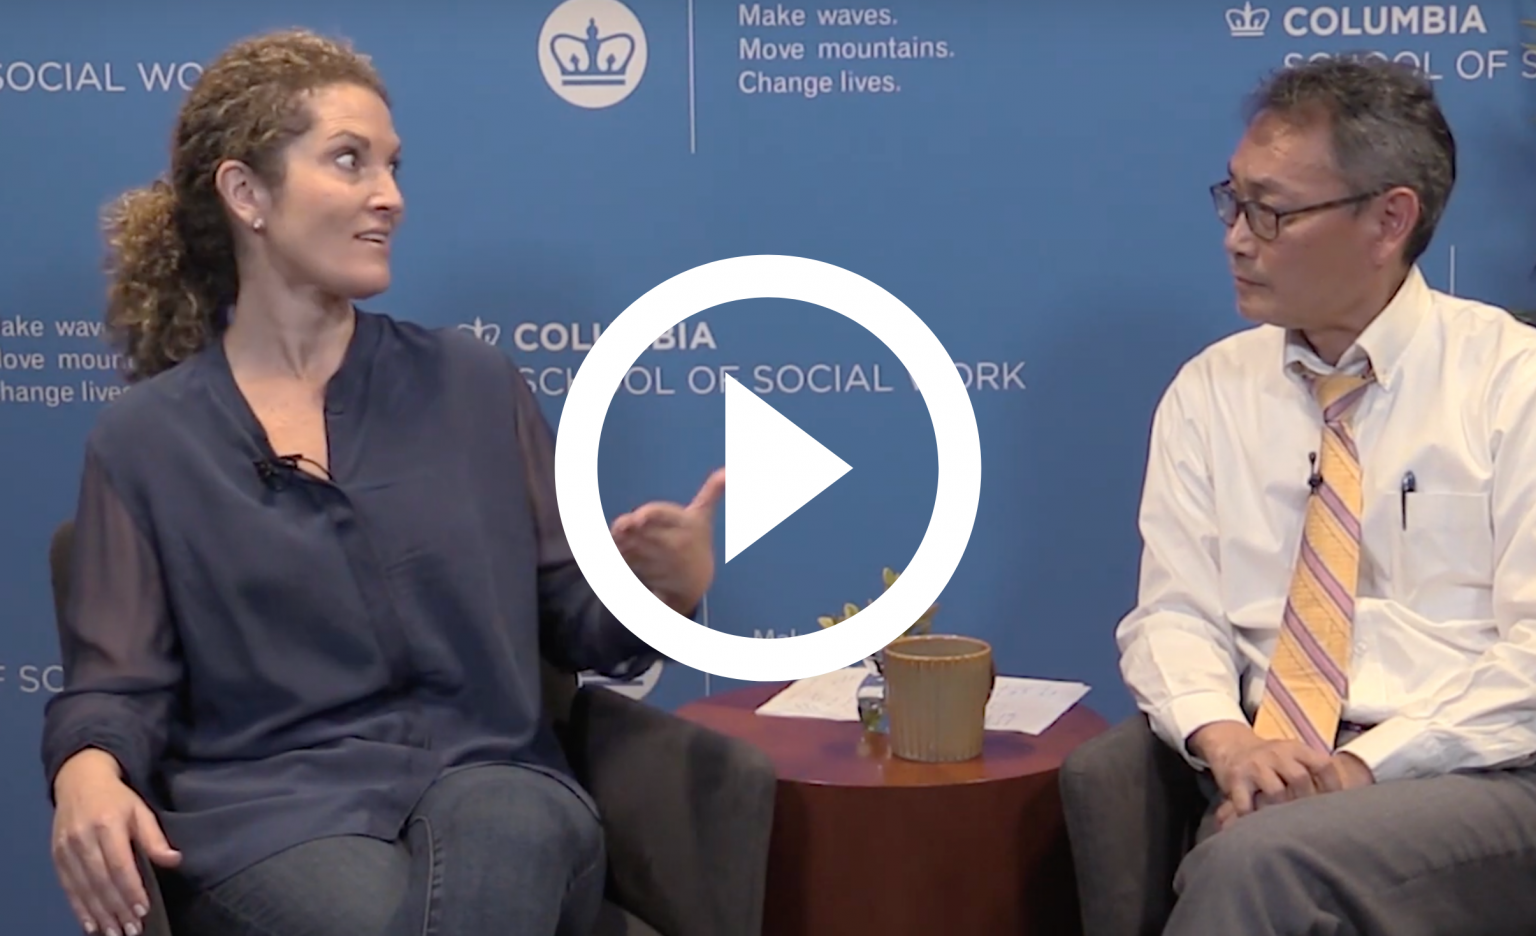 Columbia School of Social Work: Interview with Molly on DBT + Eating Disorders